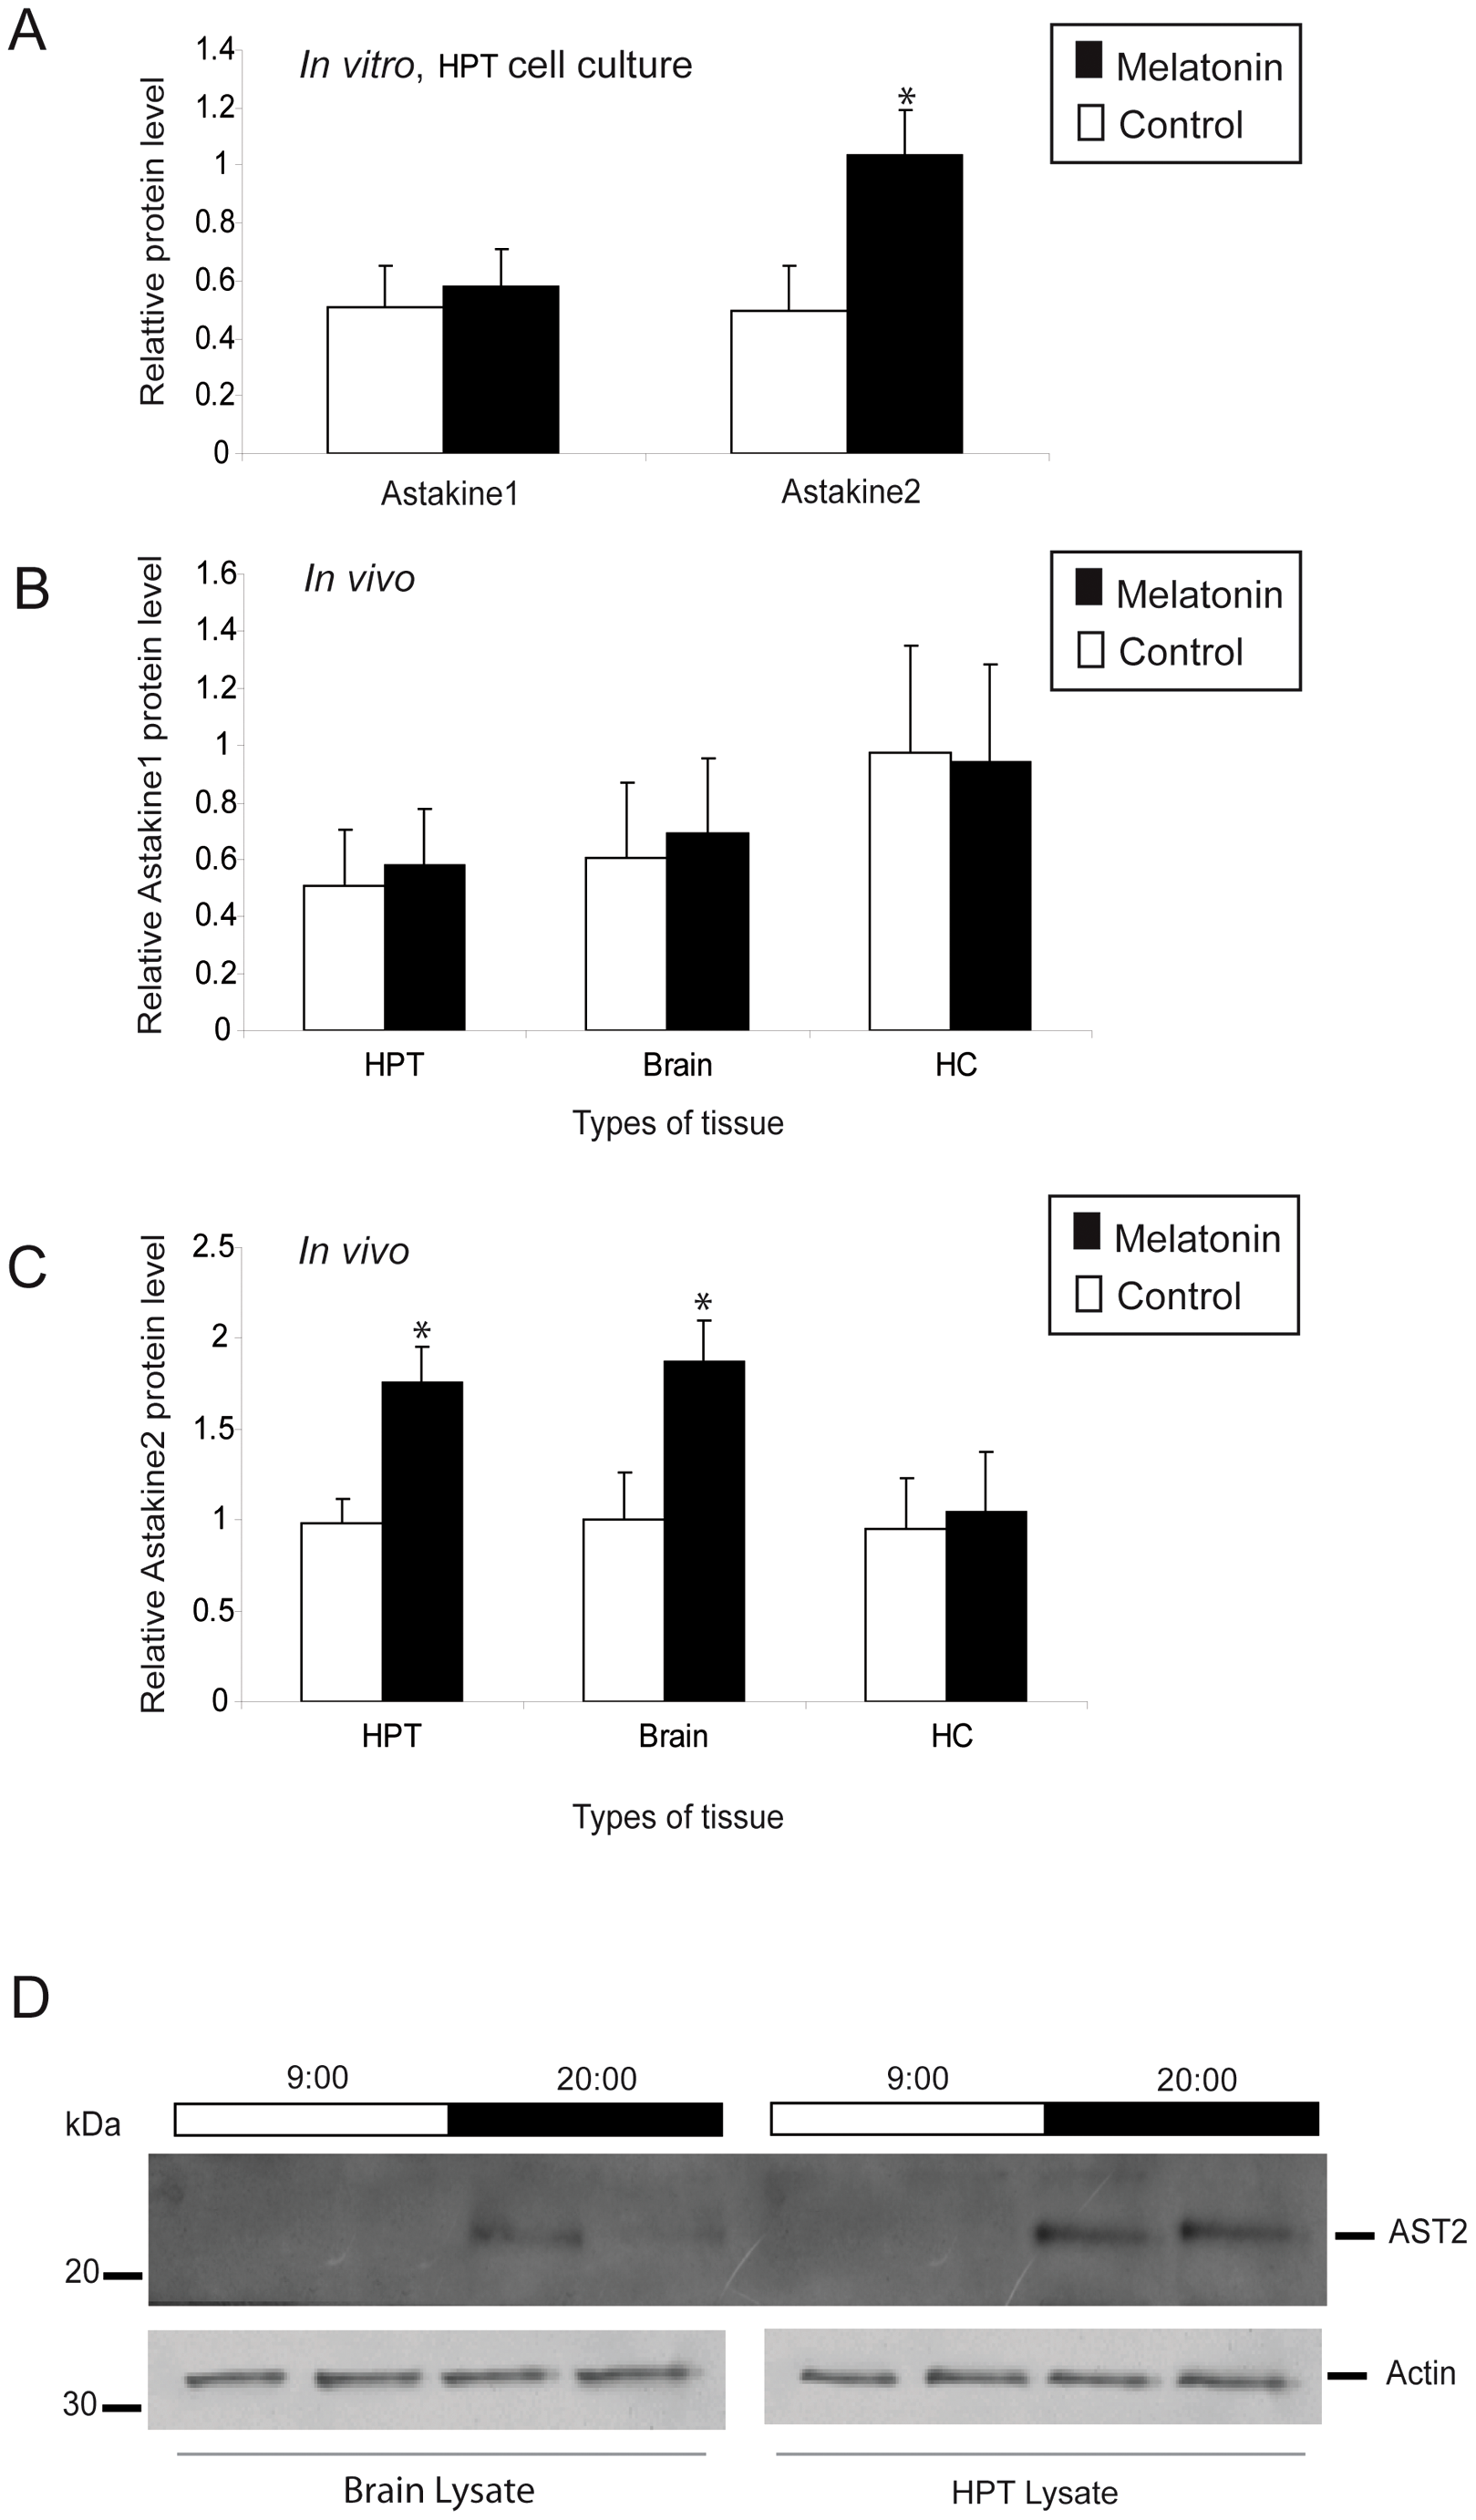 Melatonin induces higher AST2 protein levels <i>in vitro</i> and <i>in vivo</i>.